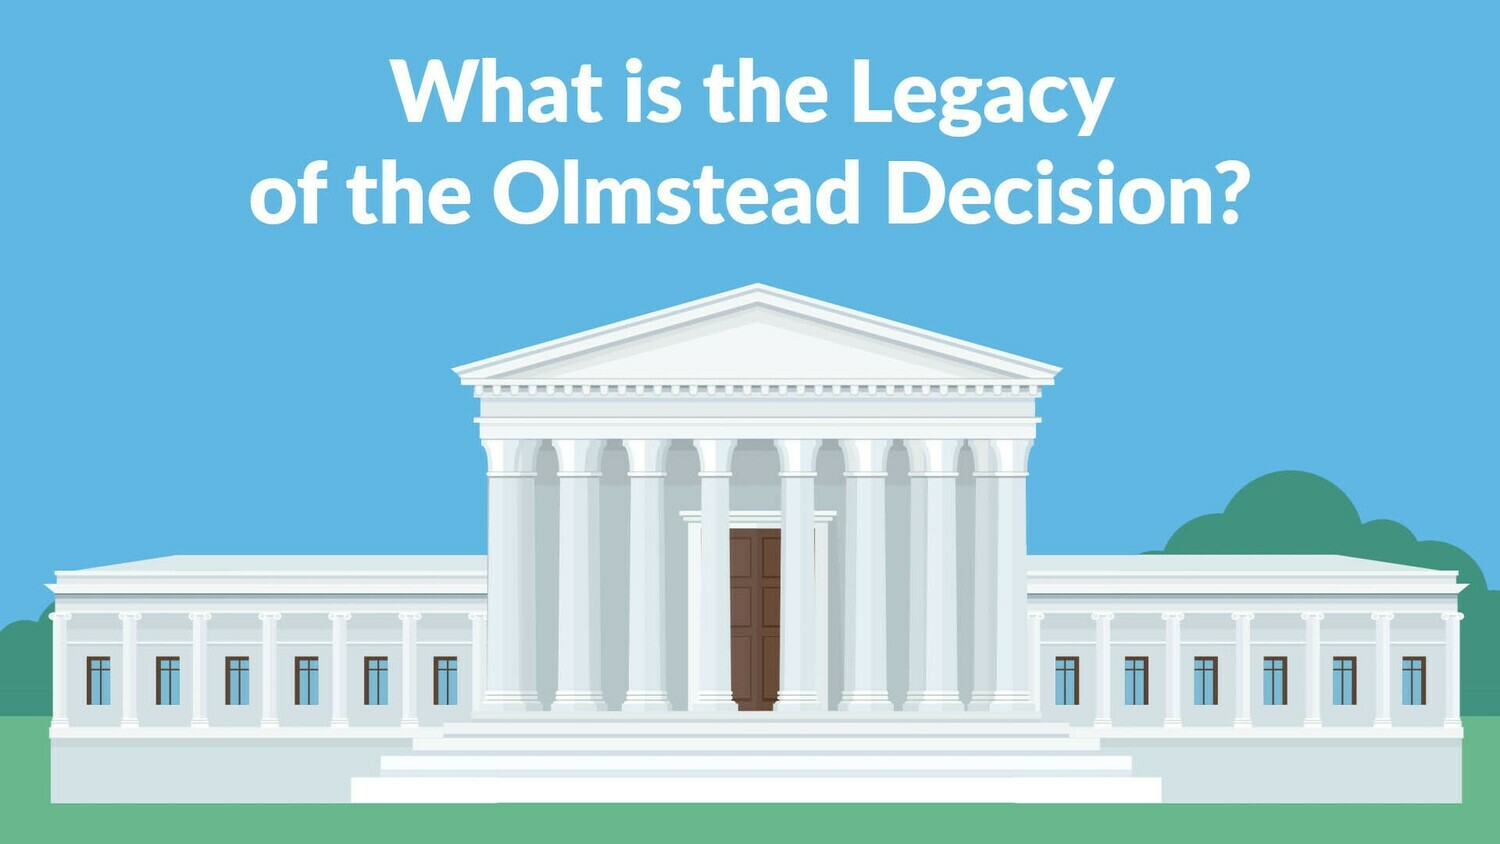 What is the Legacy of the Olmstead Decision?